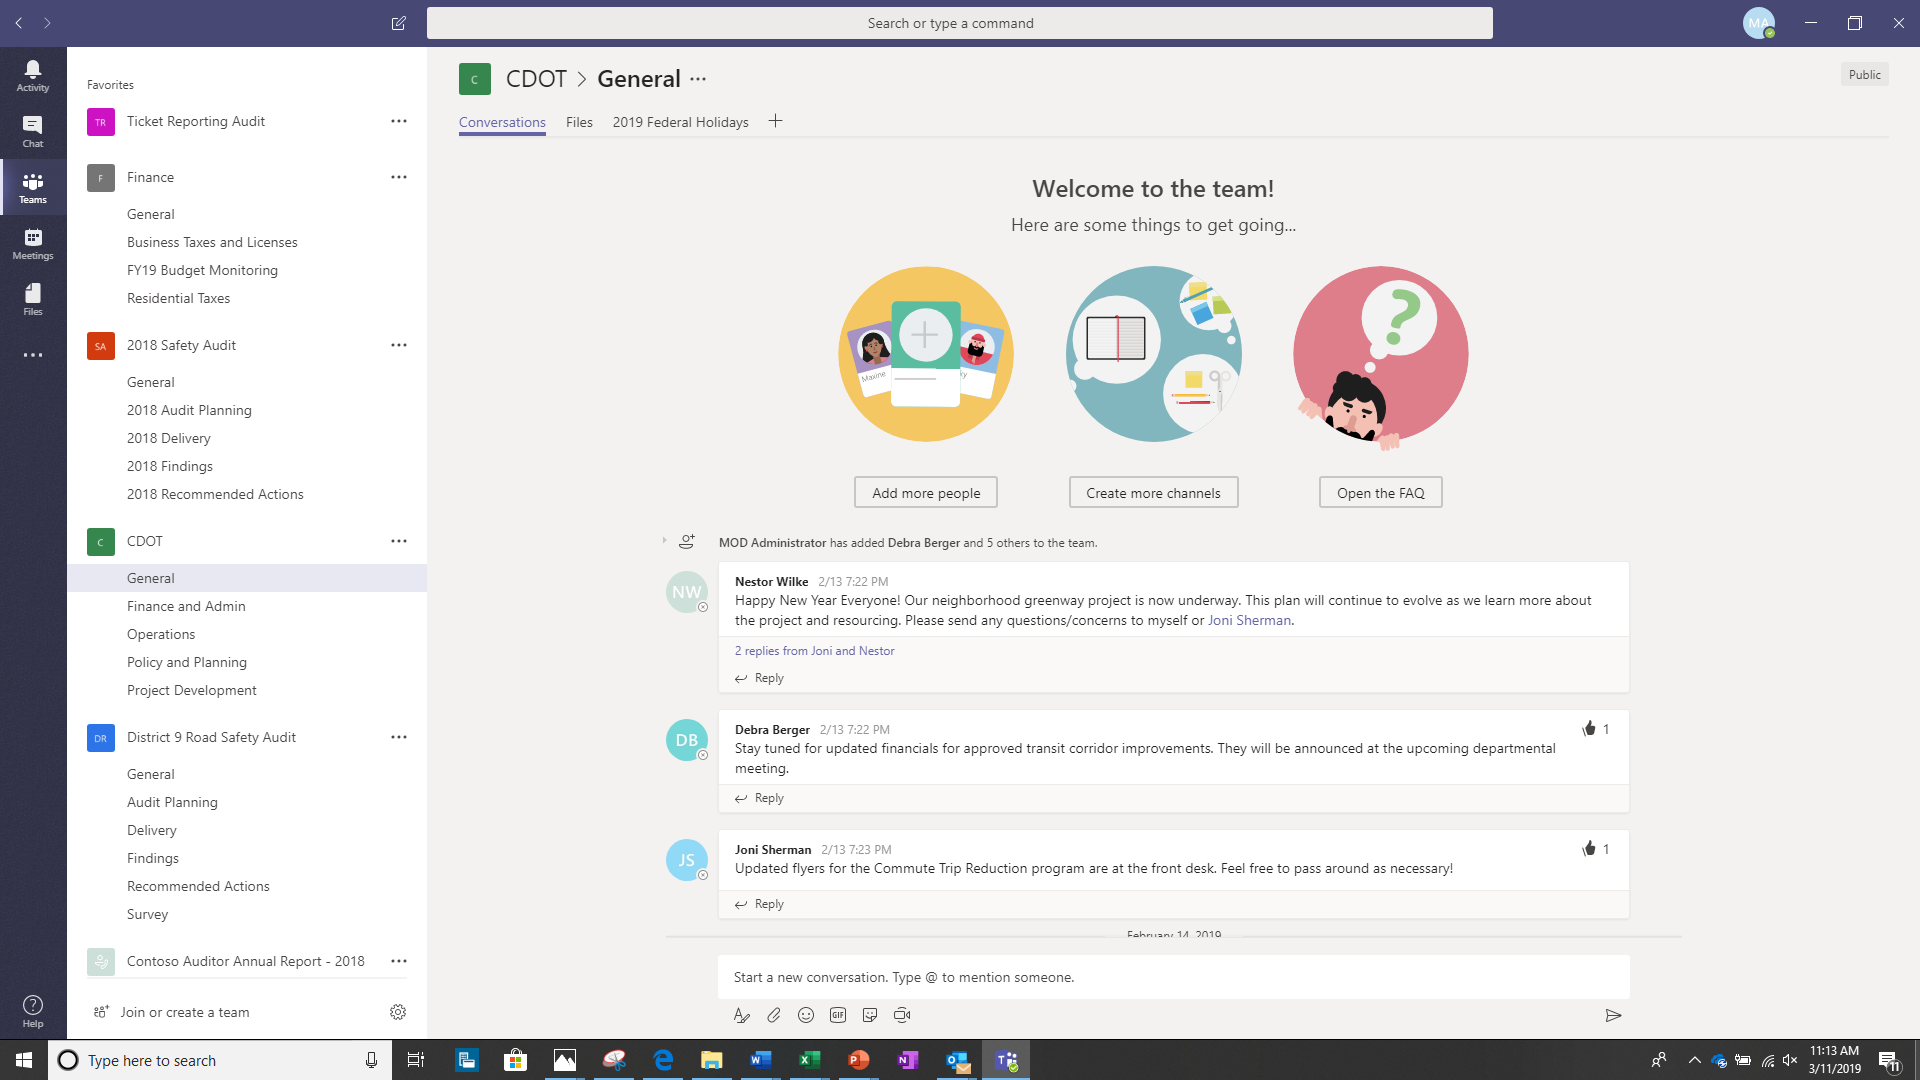 New teamwork and security capabilities for Microsoft 365